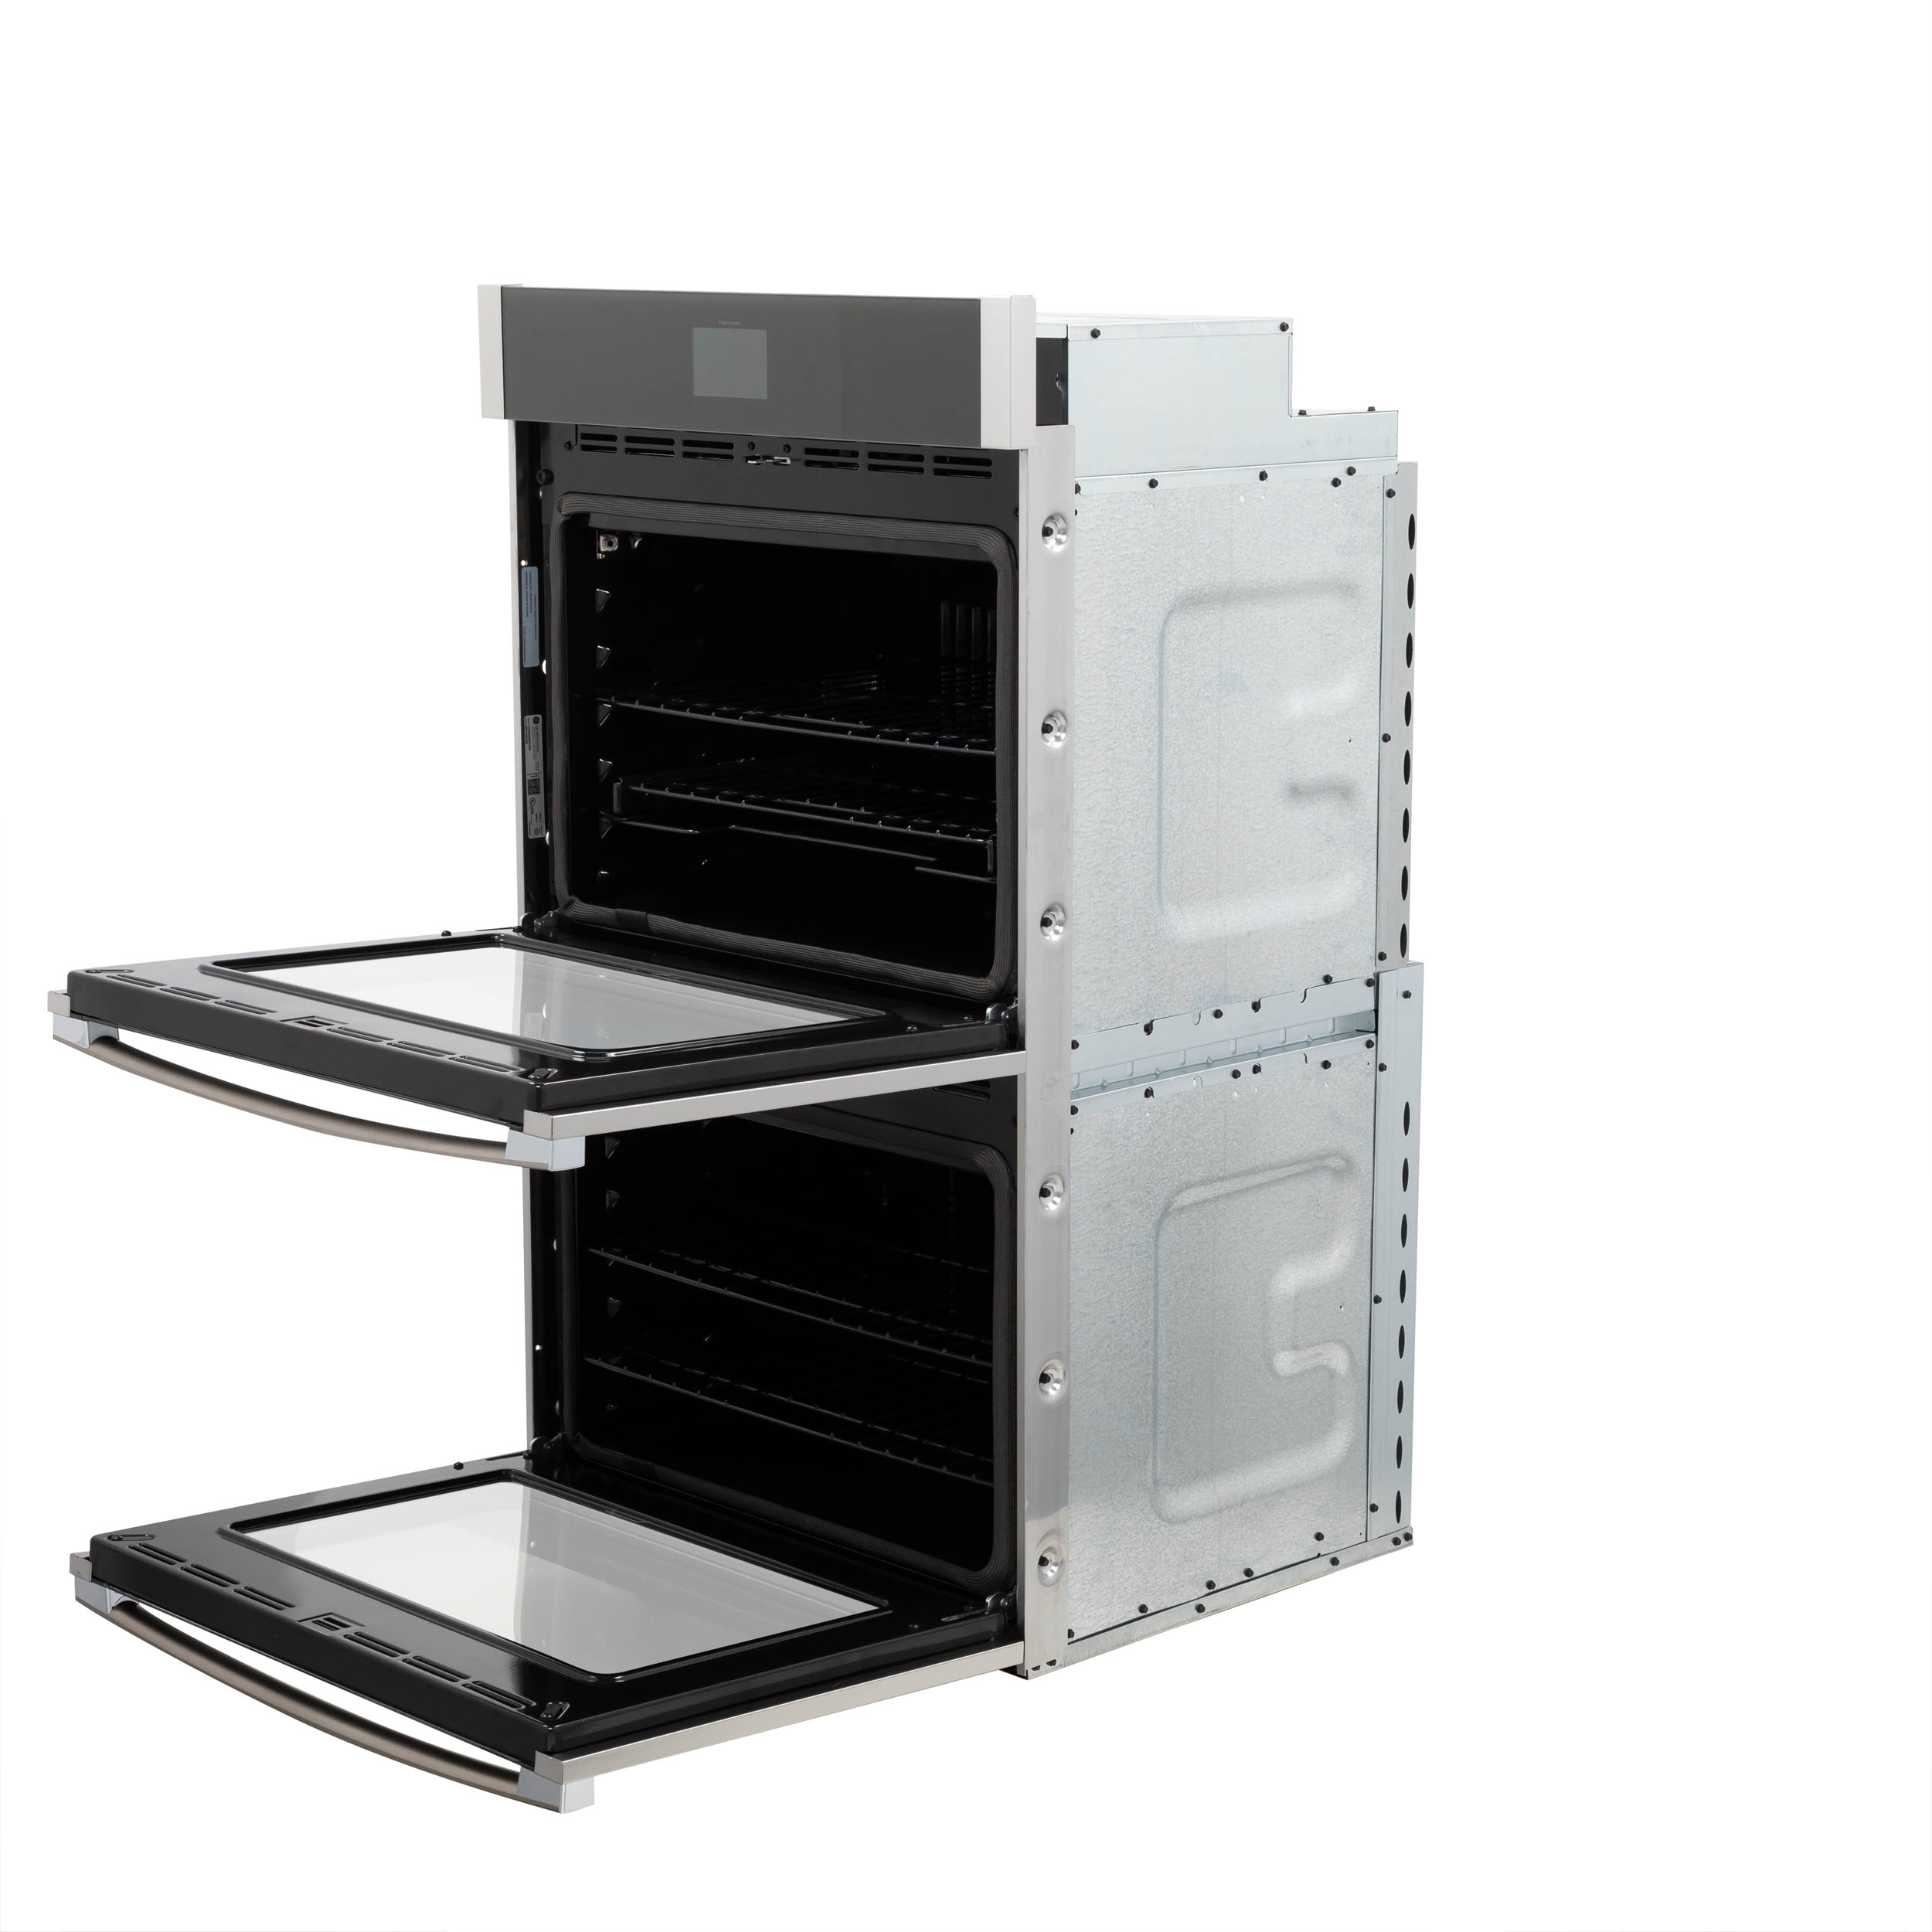 """Model: JTD5000SNSS 